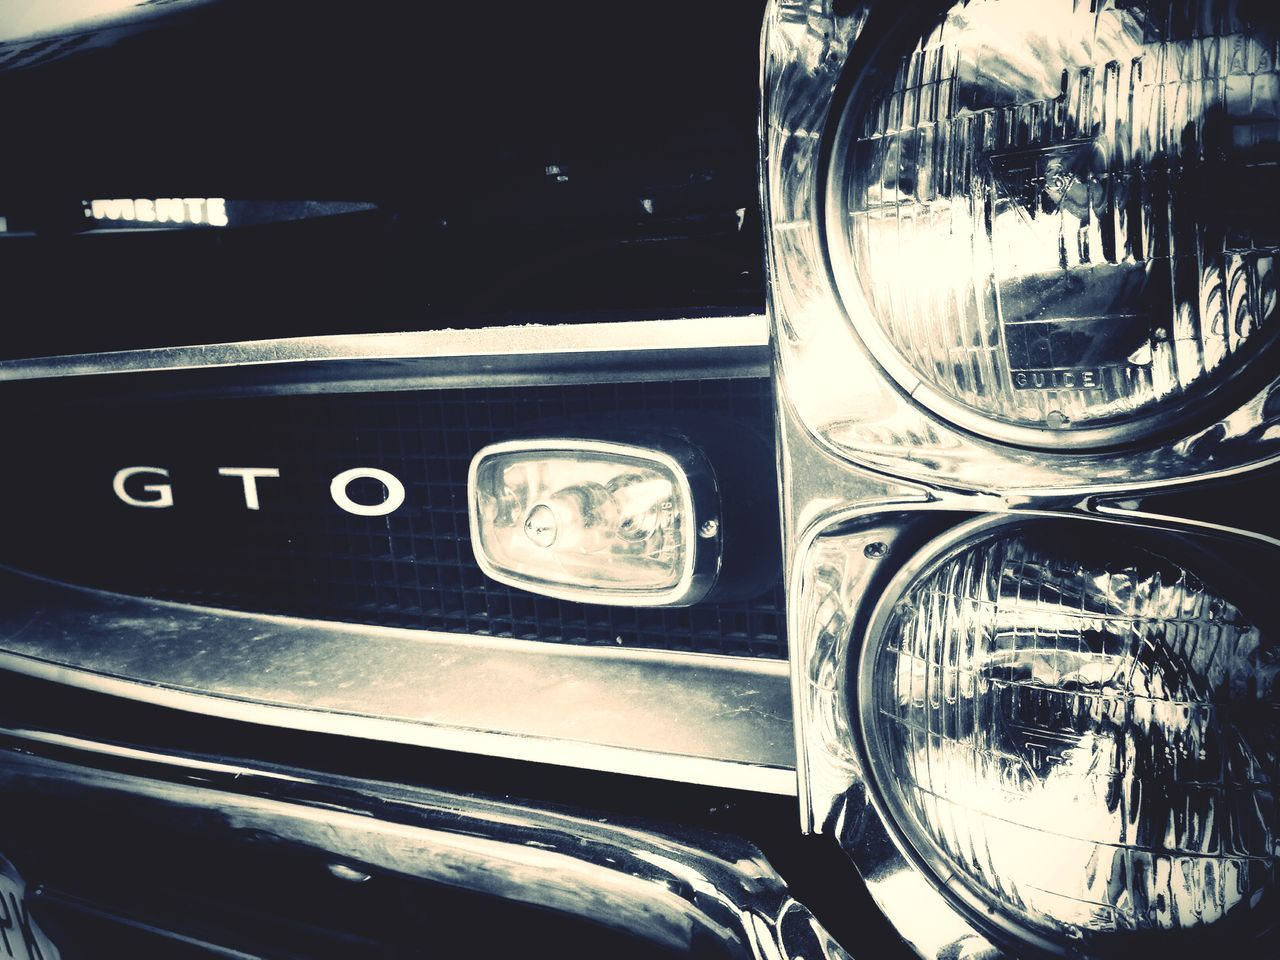 GTO Muscle car_01 WeAreJuxt.com AMPt_community Shootermag Streetphotography EyeEm Best Shots - The Streets